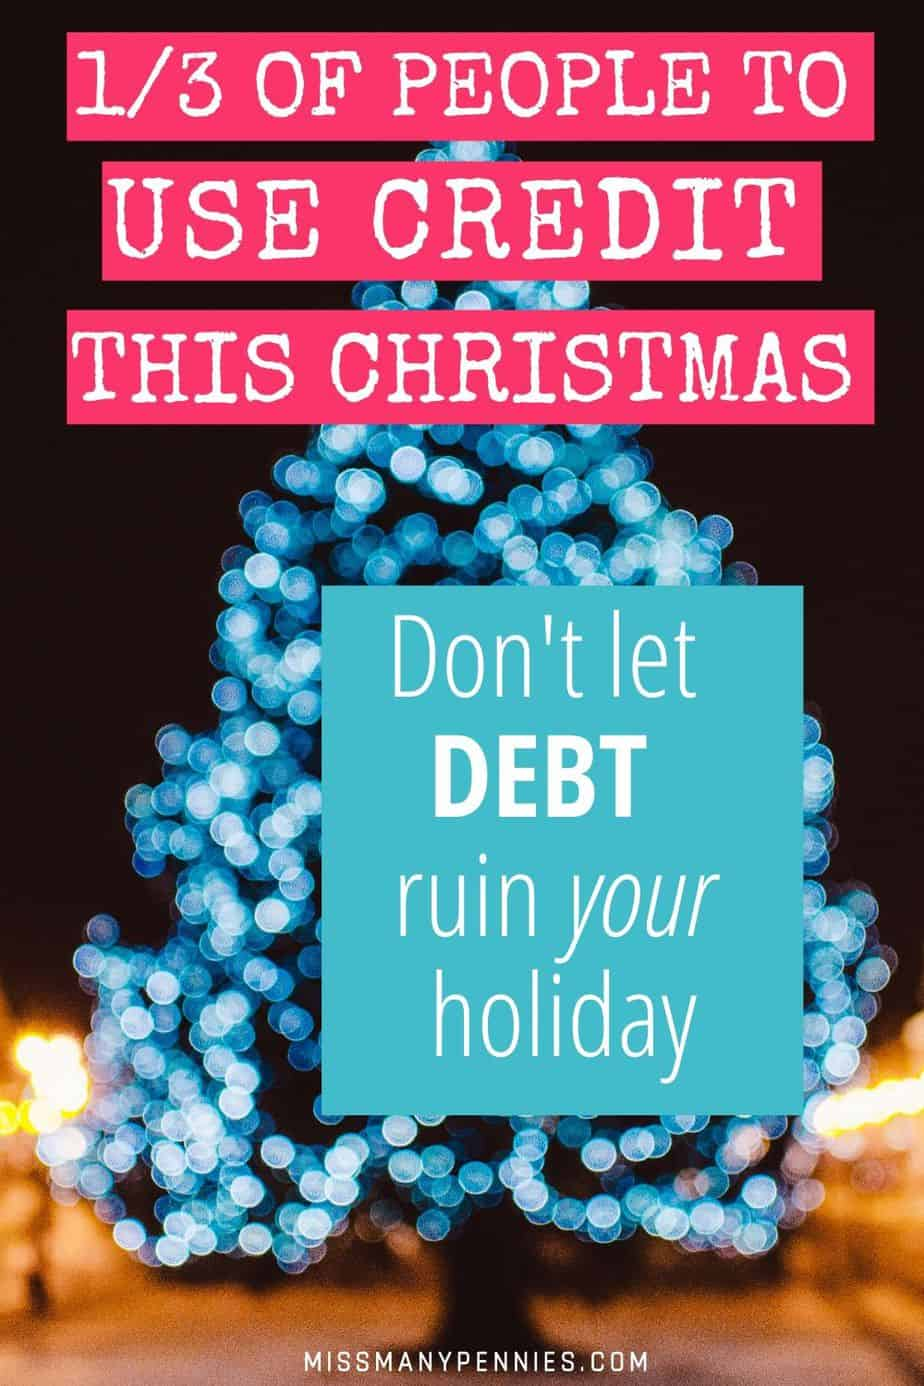 1/3 of people to use credit this Christmas, don't let debt ruin your holiday